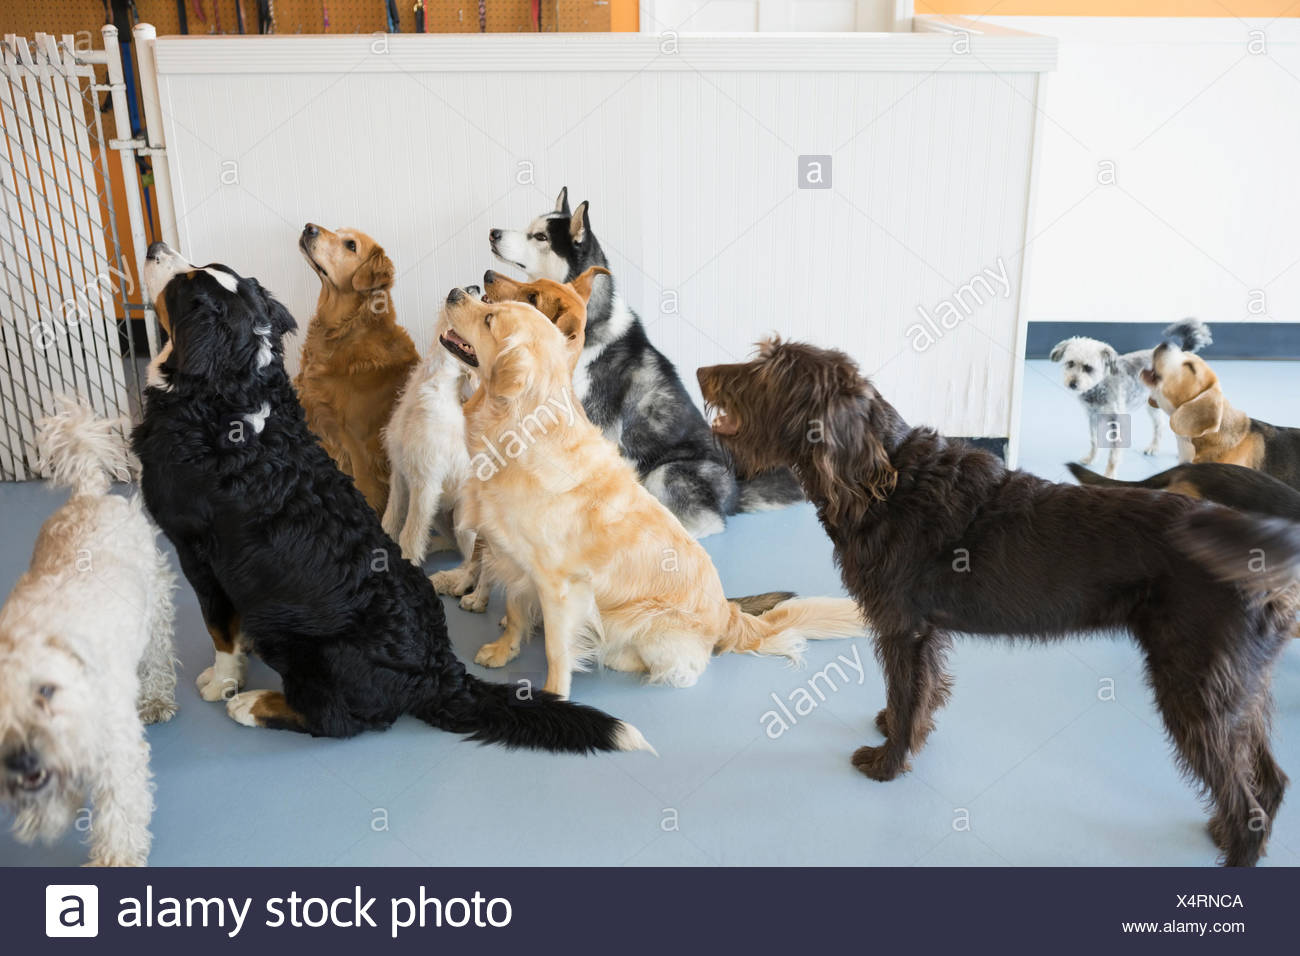 Curious dogs looking up at dog daycare - Stock Image